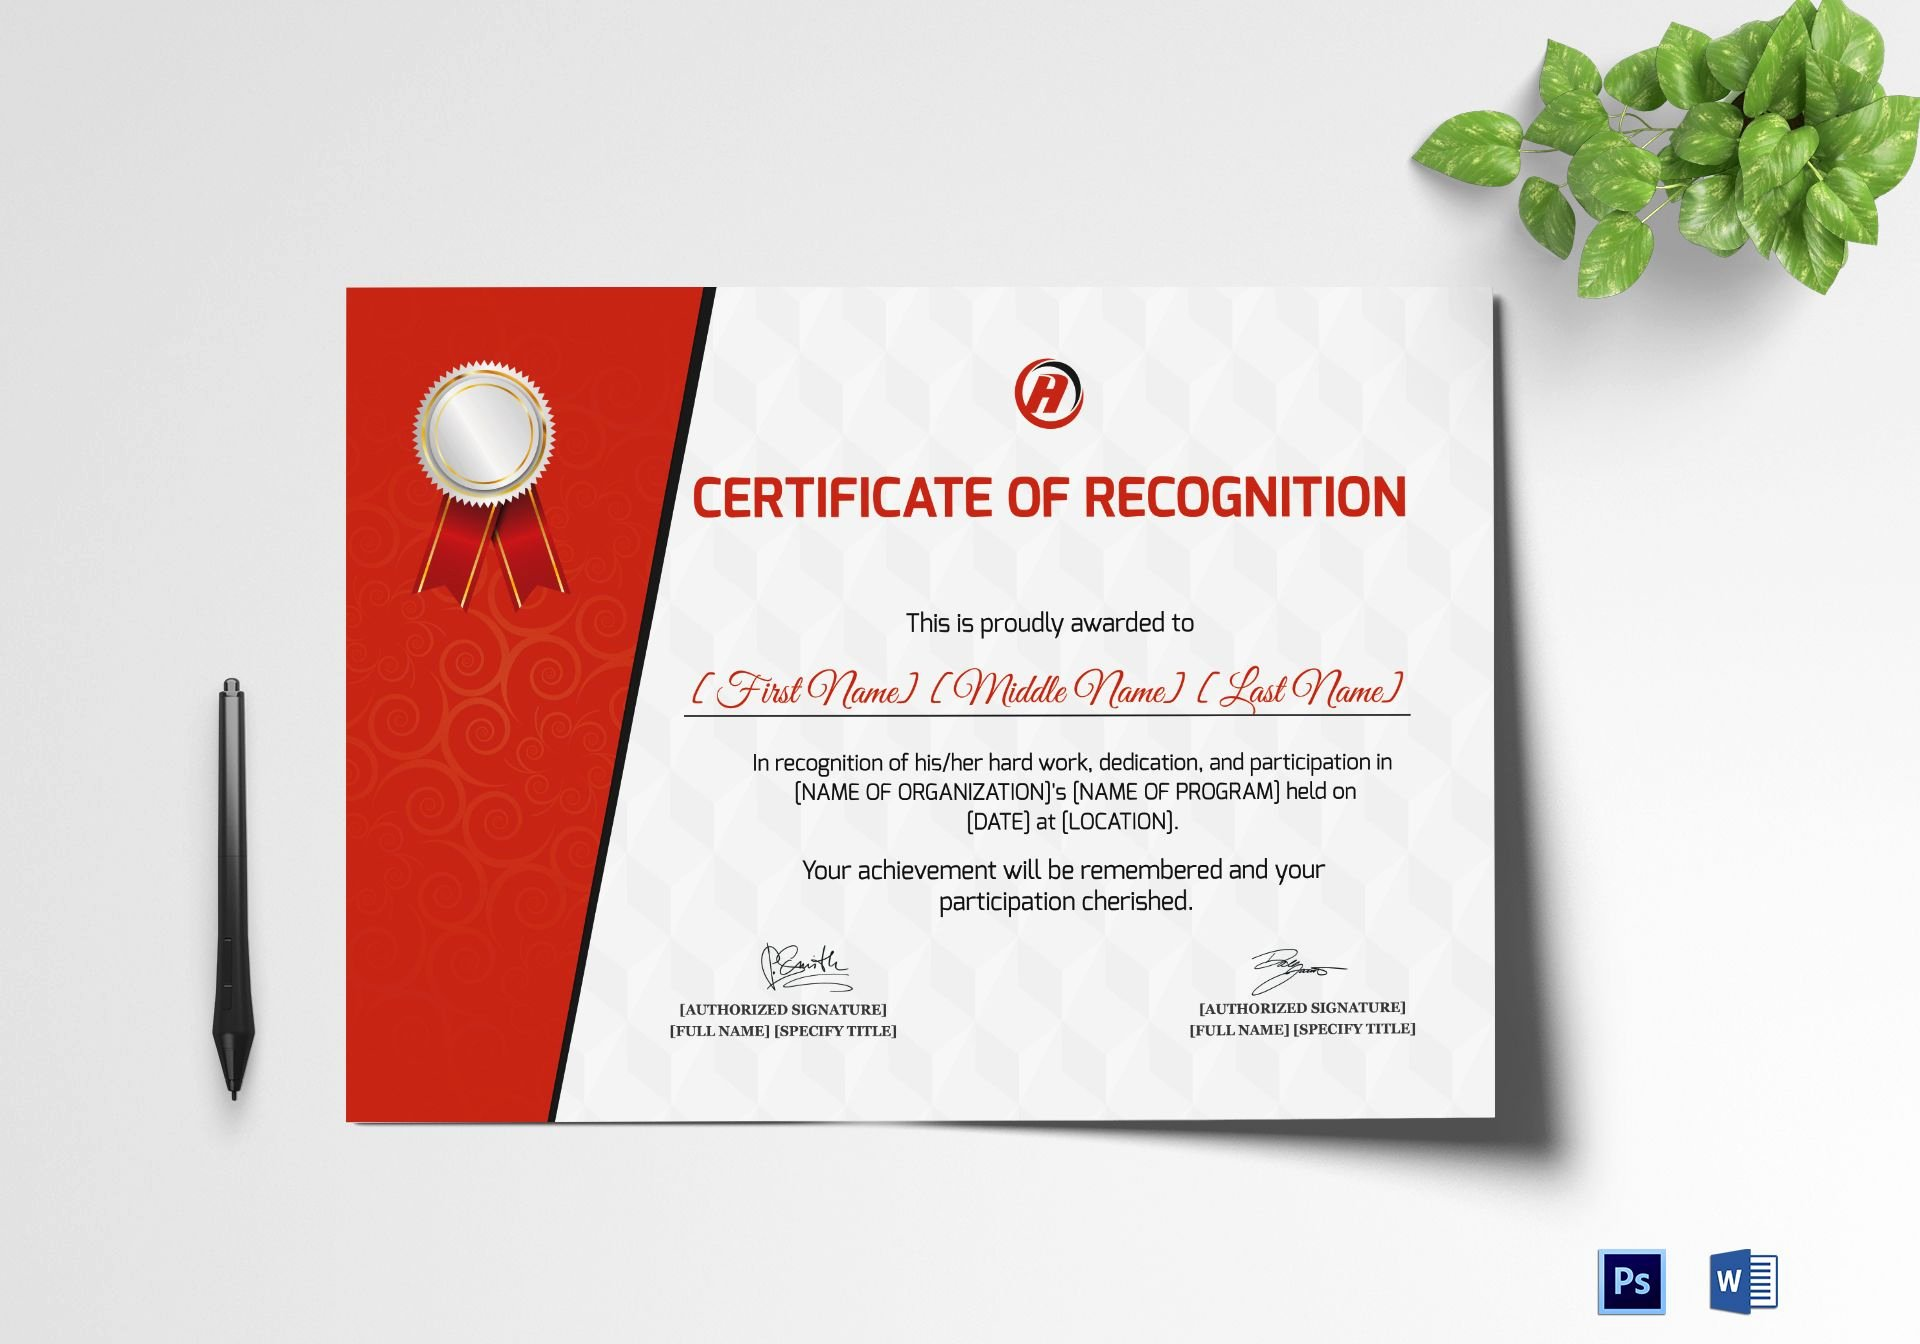 Baby Dedication Certificate Wording Unique Certificate Of Recognition for Dedication Template In Psd